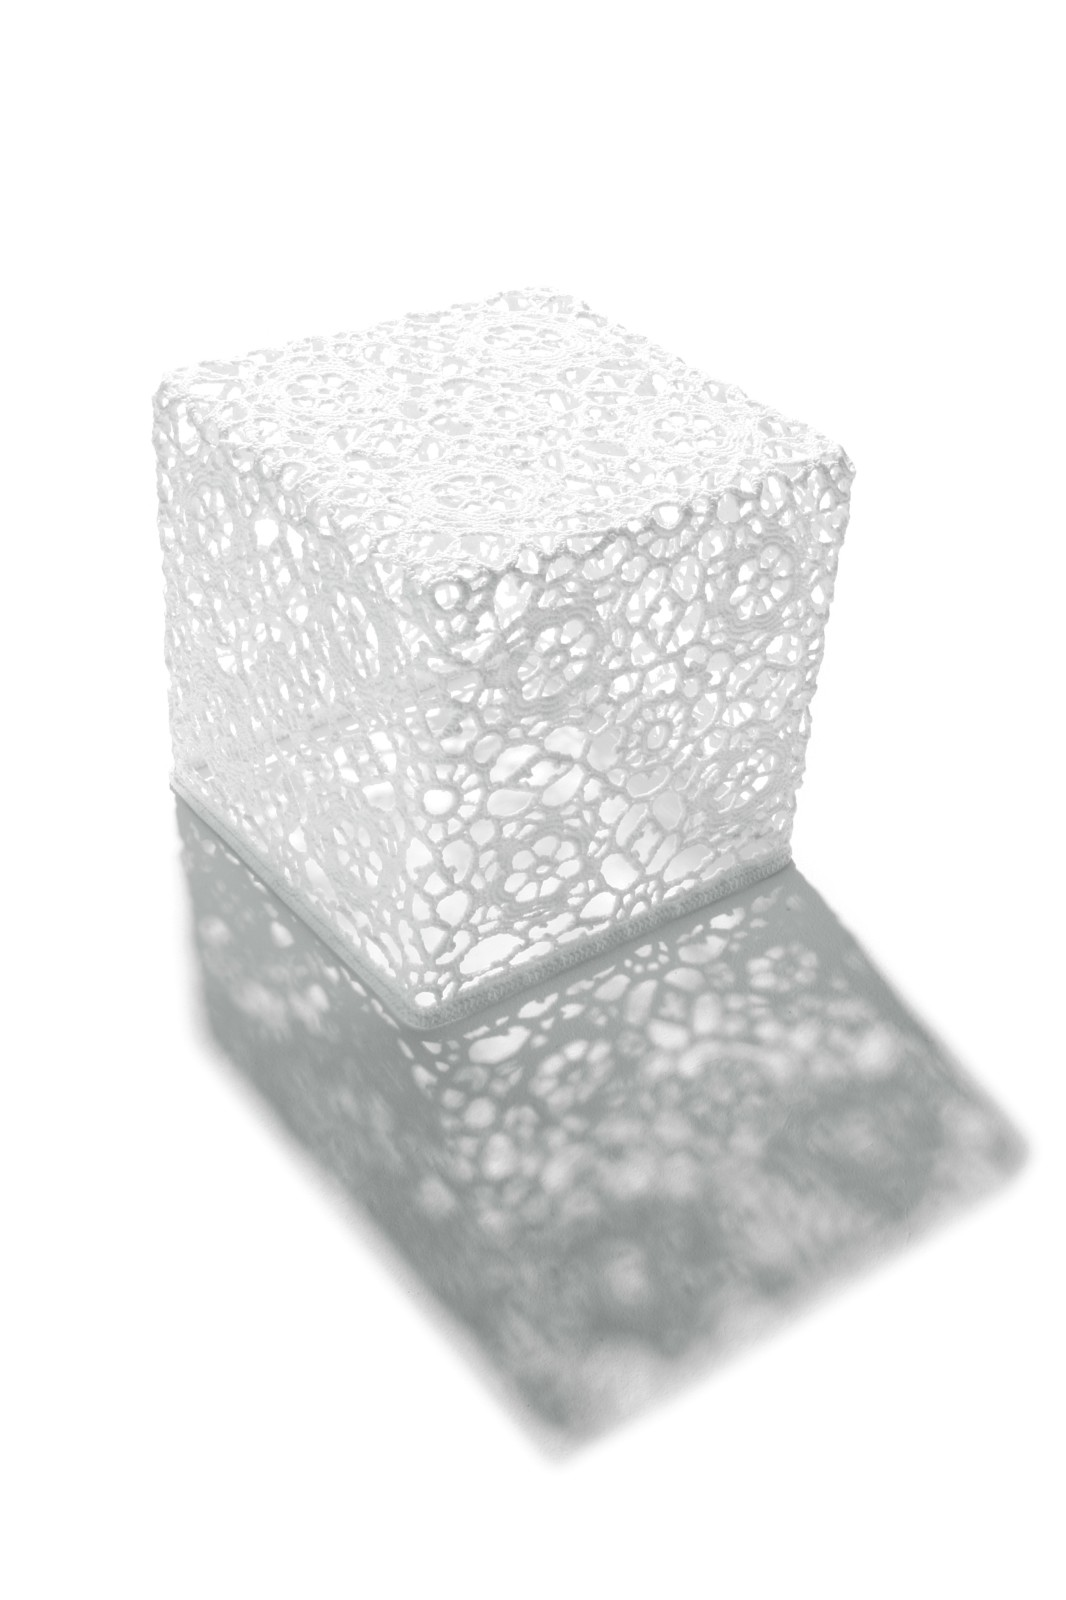 Crochet Side Table - Square